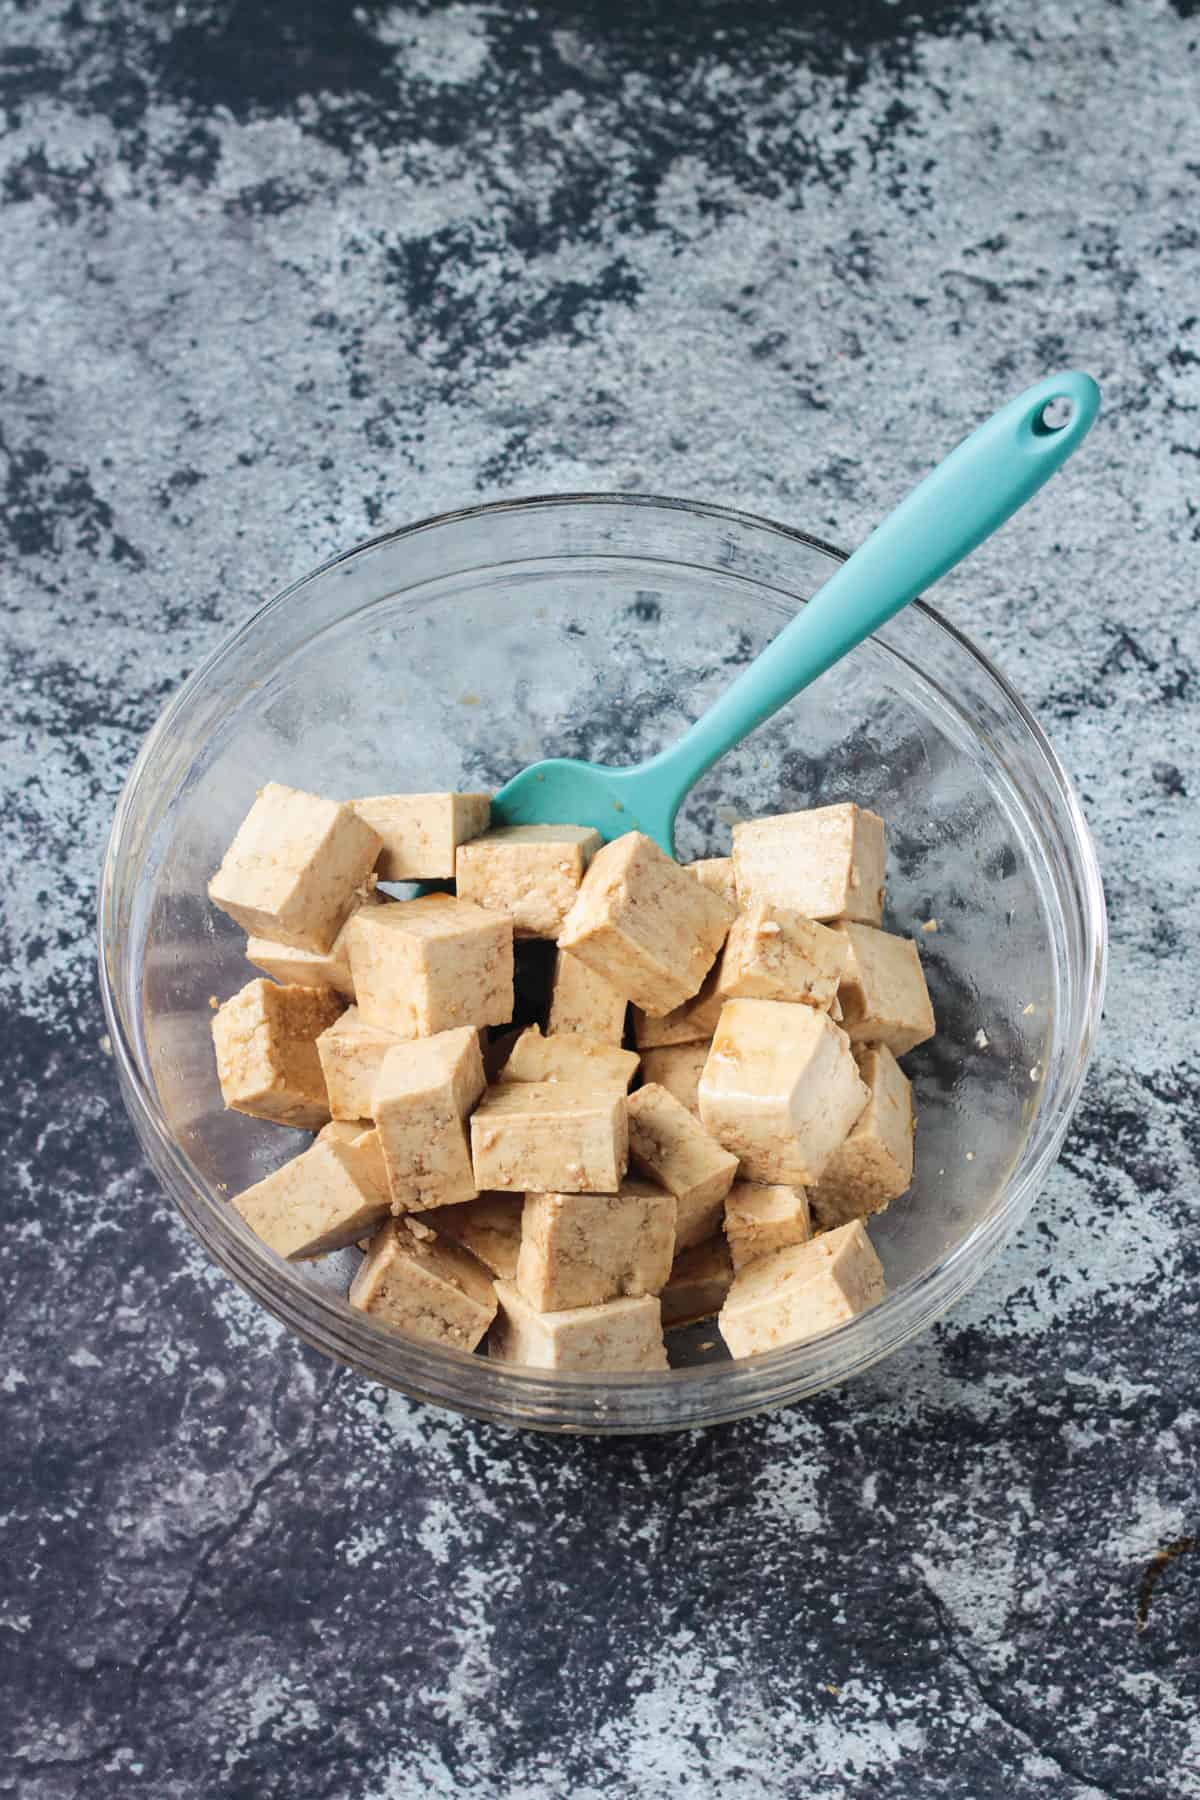 tofu cubes marinating in a glass bowl